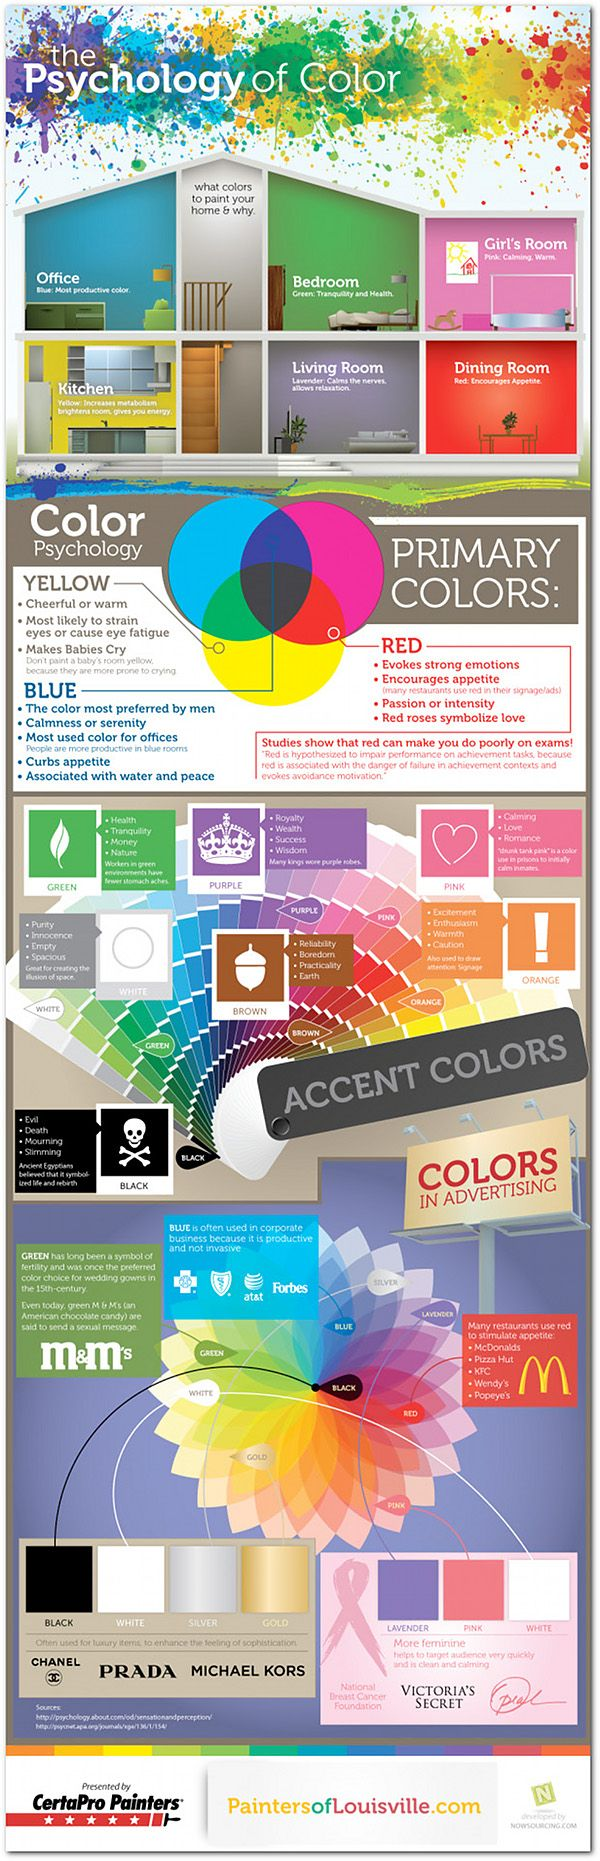 Why marketers choose certain colors | The psychology of color